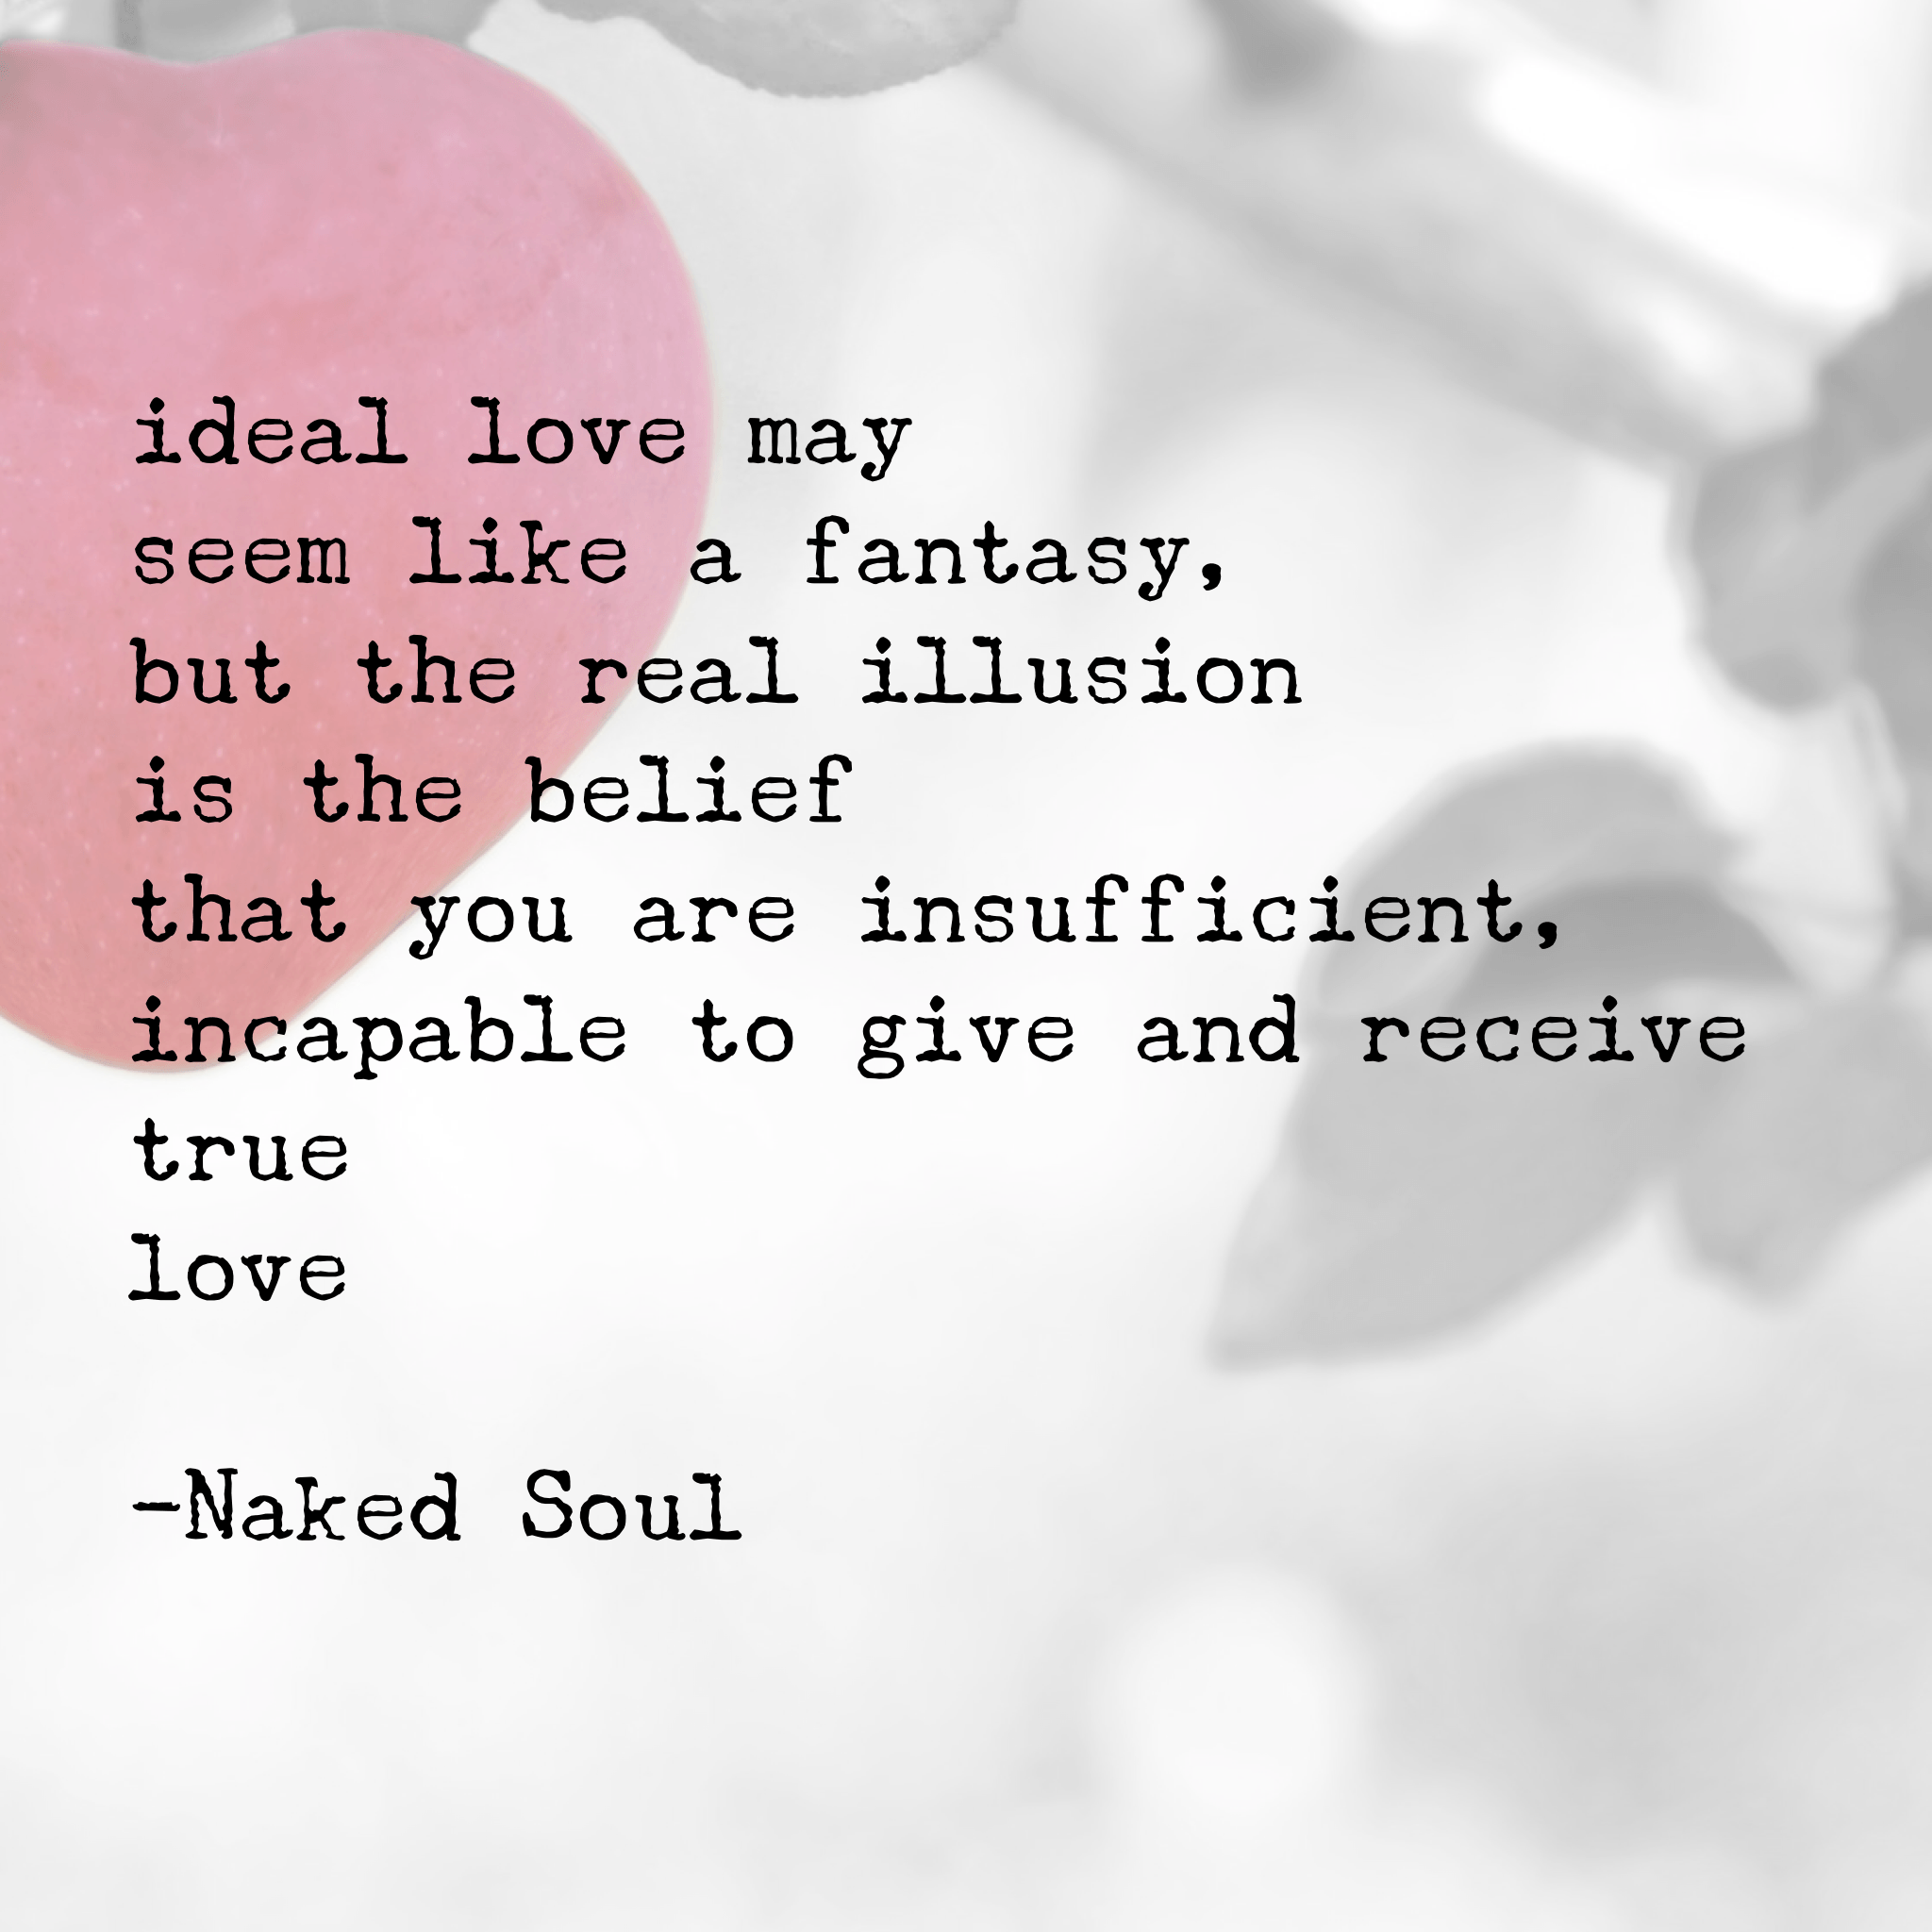 ideal love may seem like a fantasy, but the real illusion is the belief that you are insufficient, incapable to give and receive true love